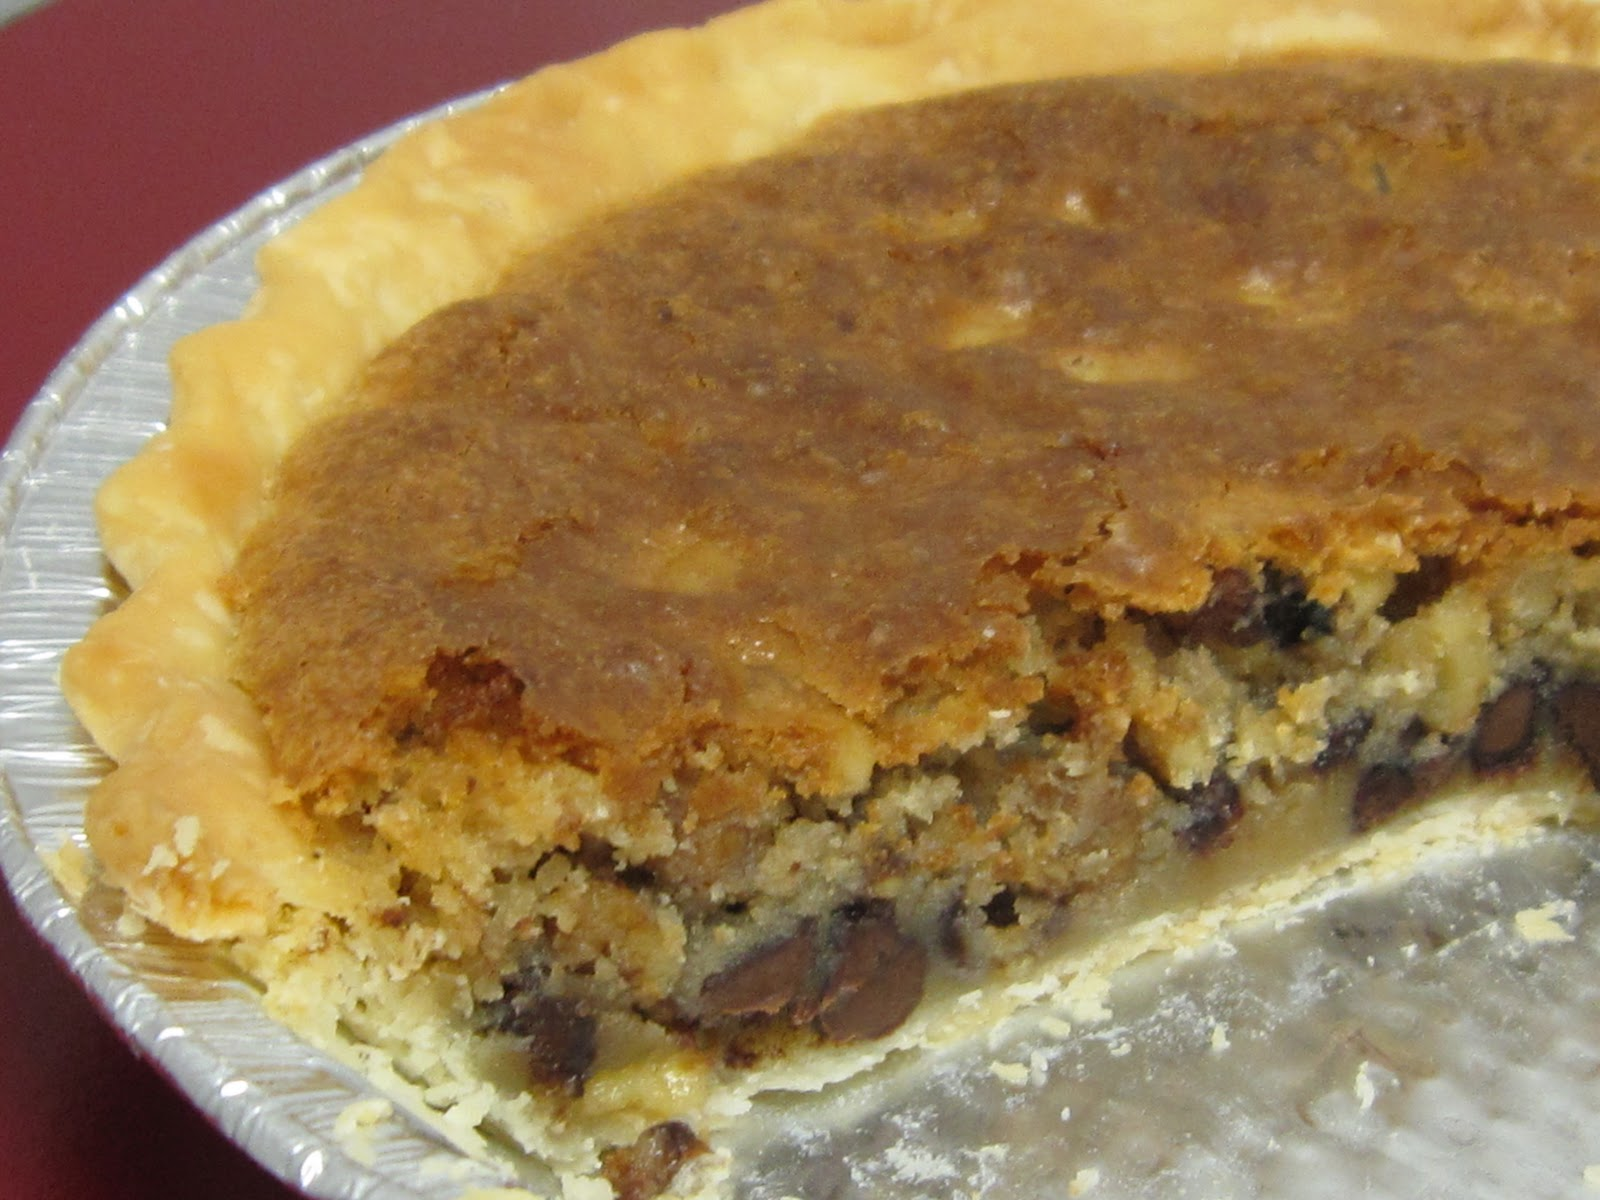 HANNAH IN THE KITCHEN: Toll House Chocolate Chip Pie